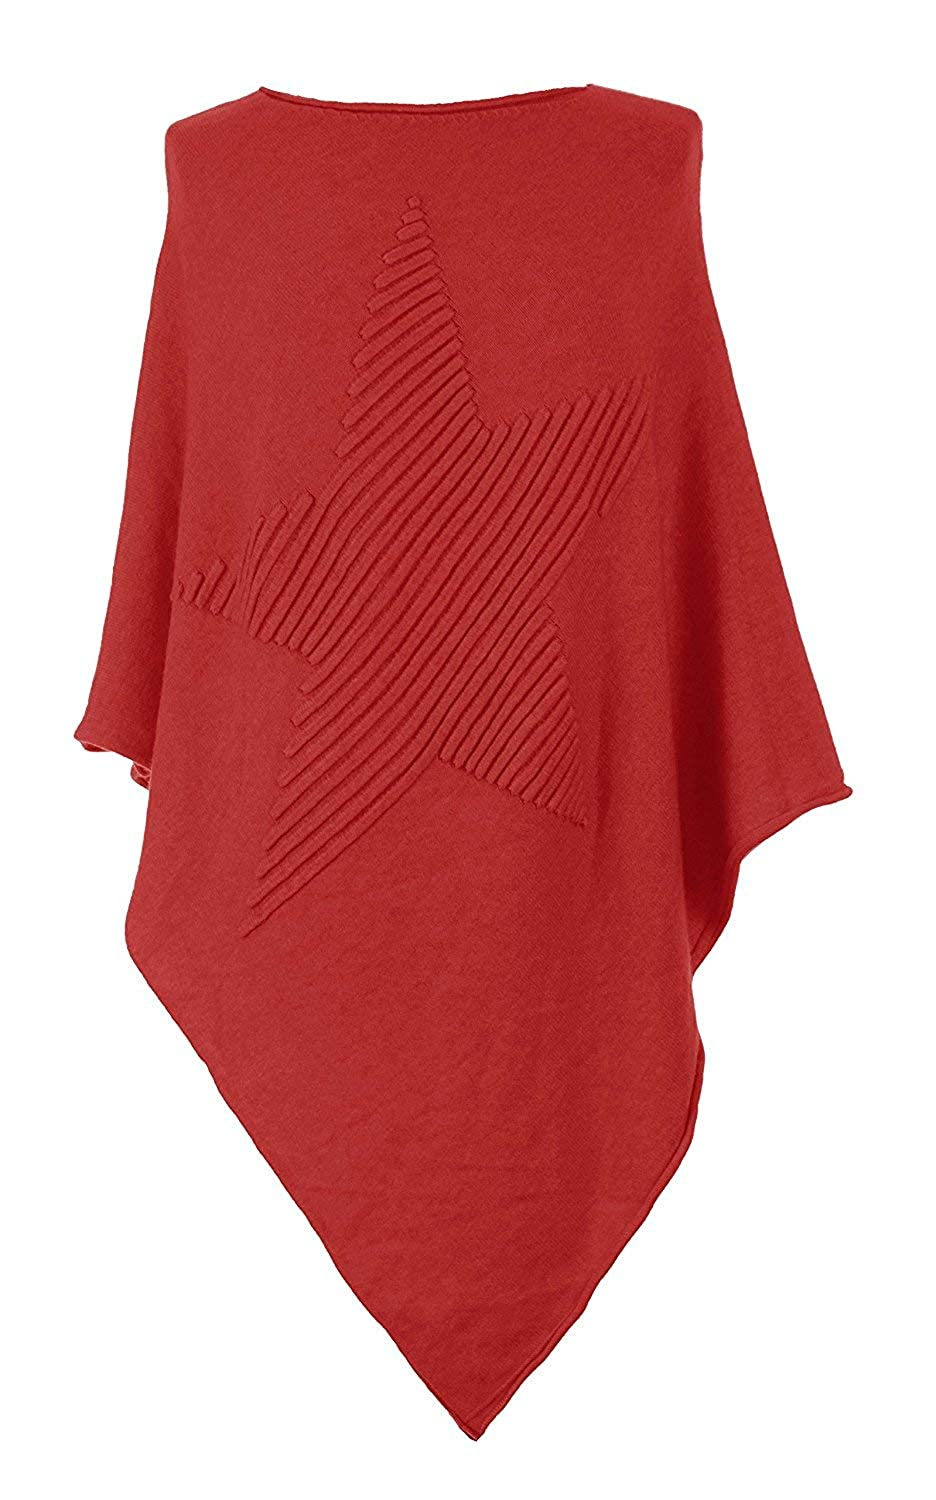 Gracious Girl Women Italian Lagenlook Quirky Soft Knit Ribbed Star Poncho Cape Wrap Kaftan Sweater Jumper Top